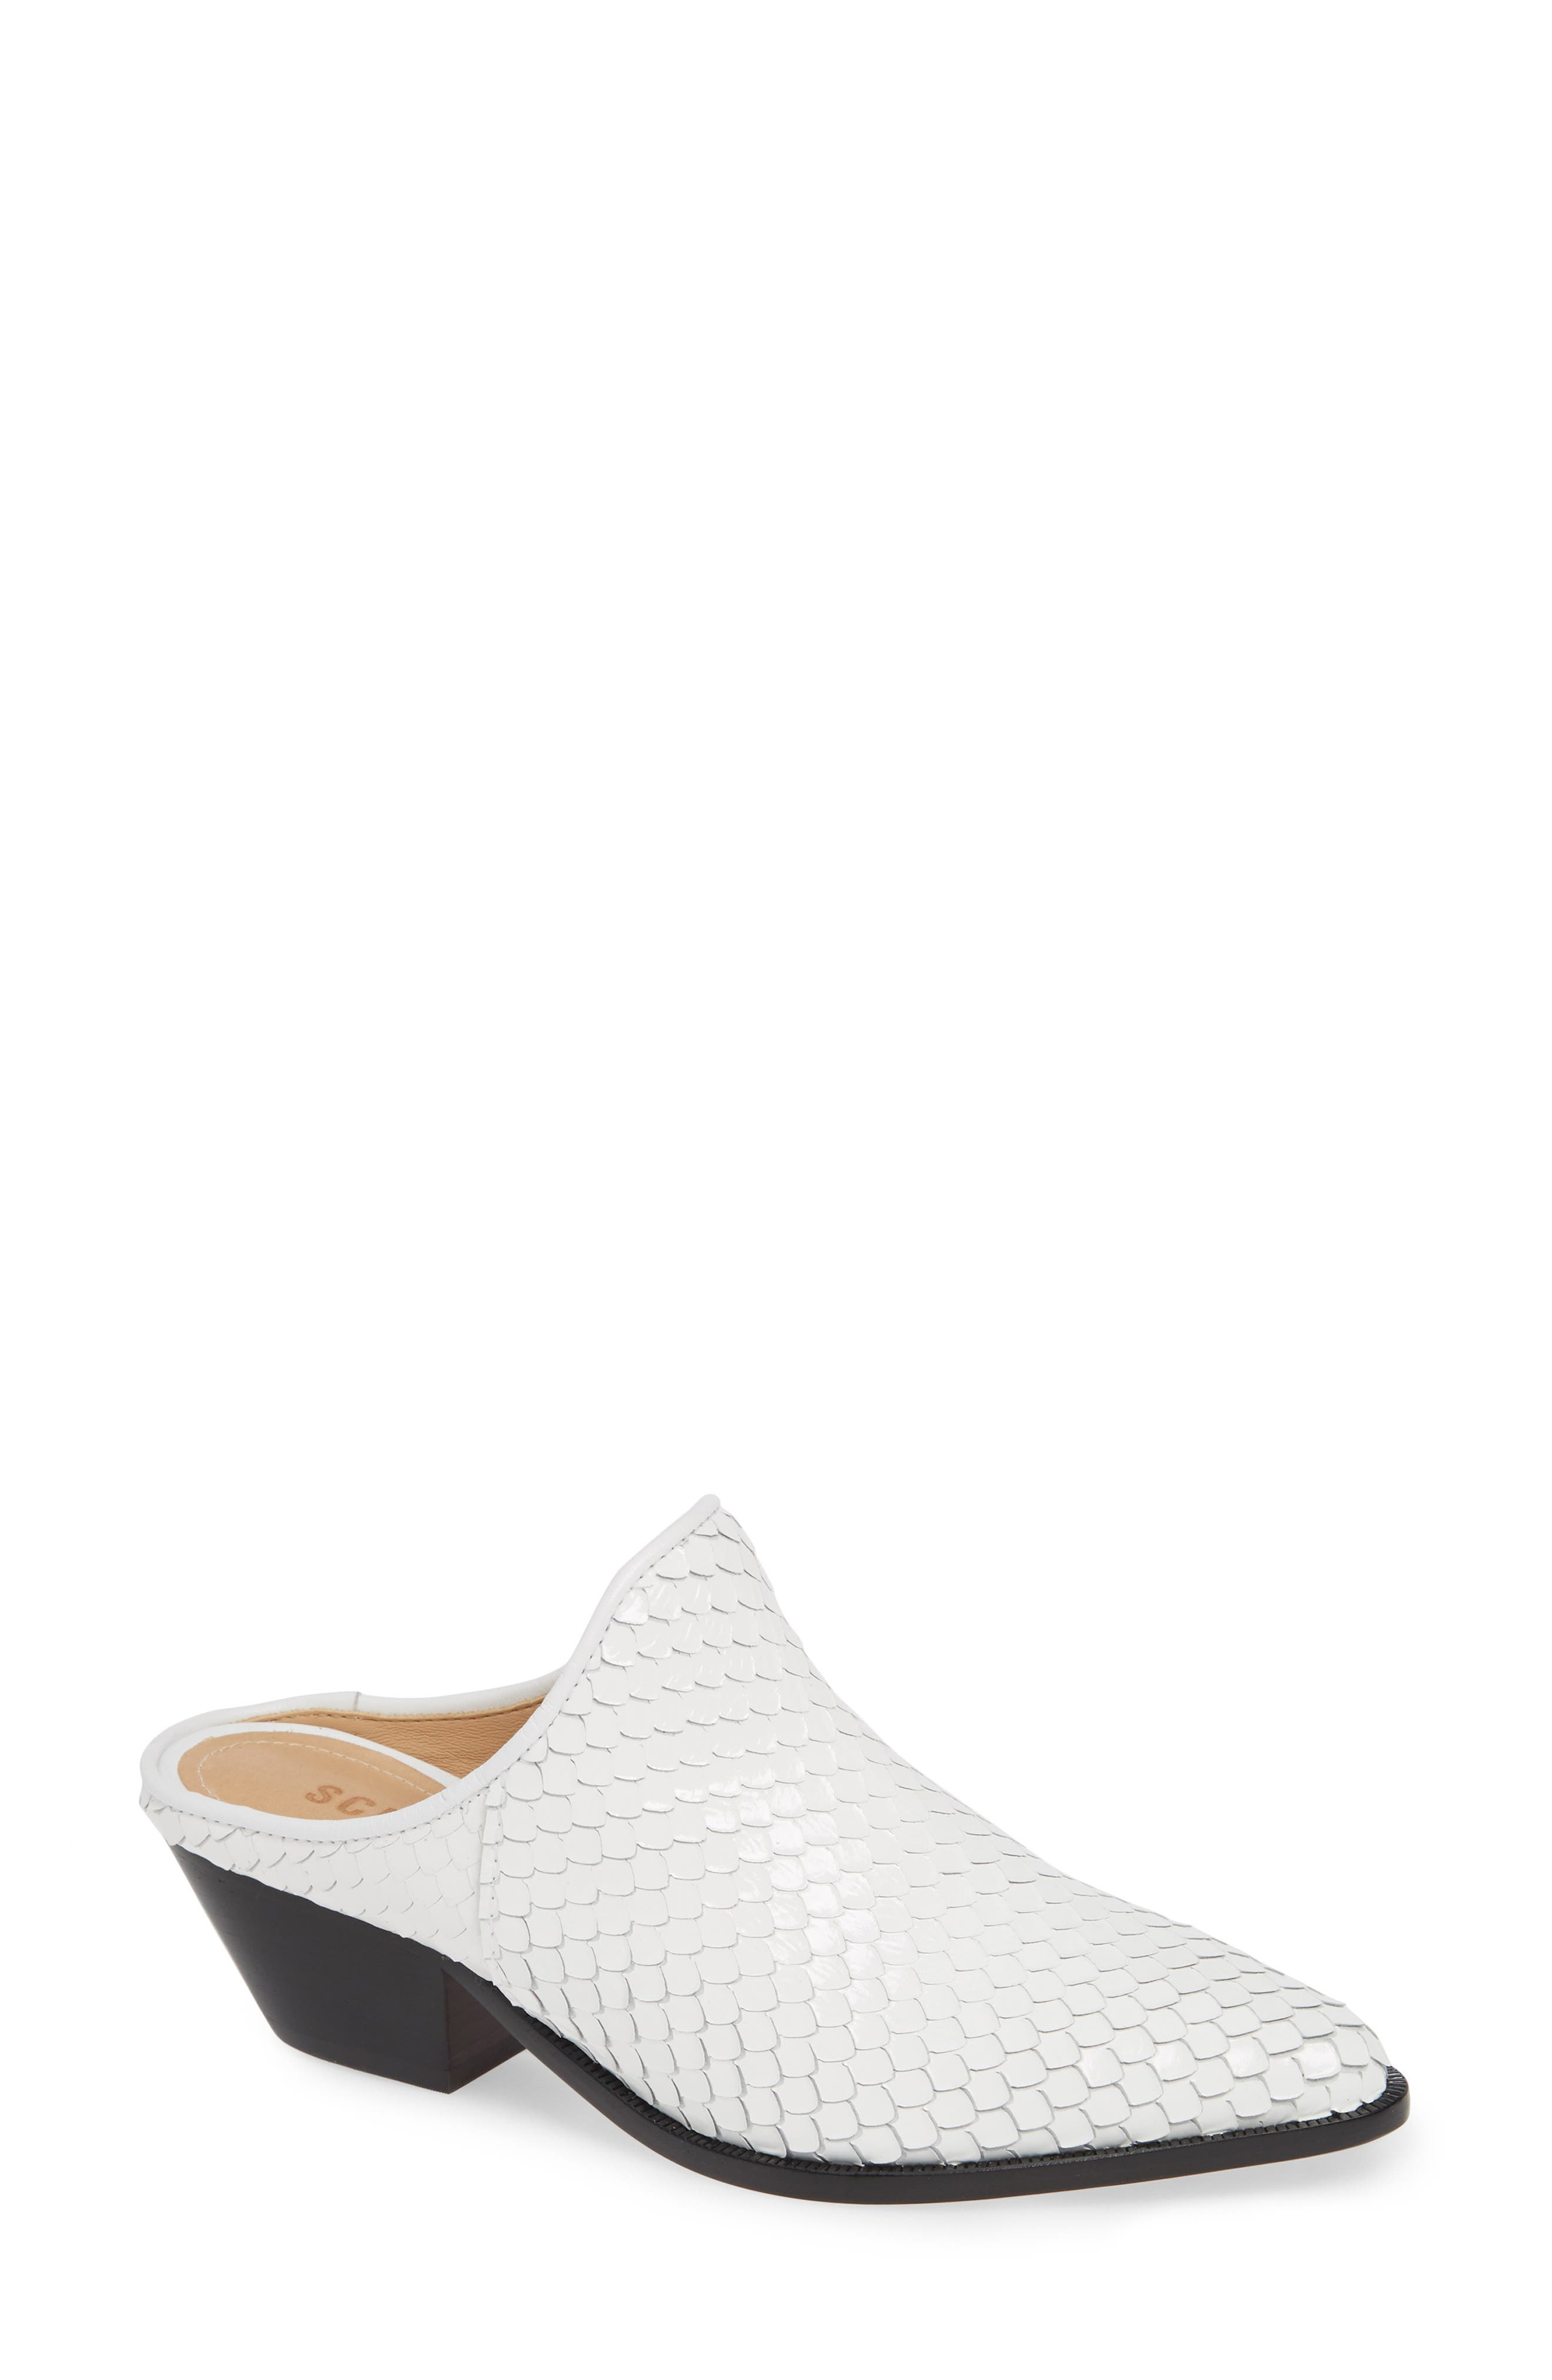 Leanny Mule,                         Main,                         color, WHITE LEATHER